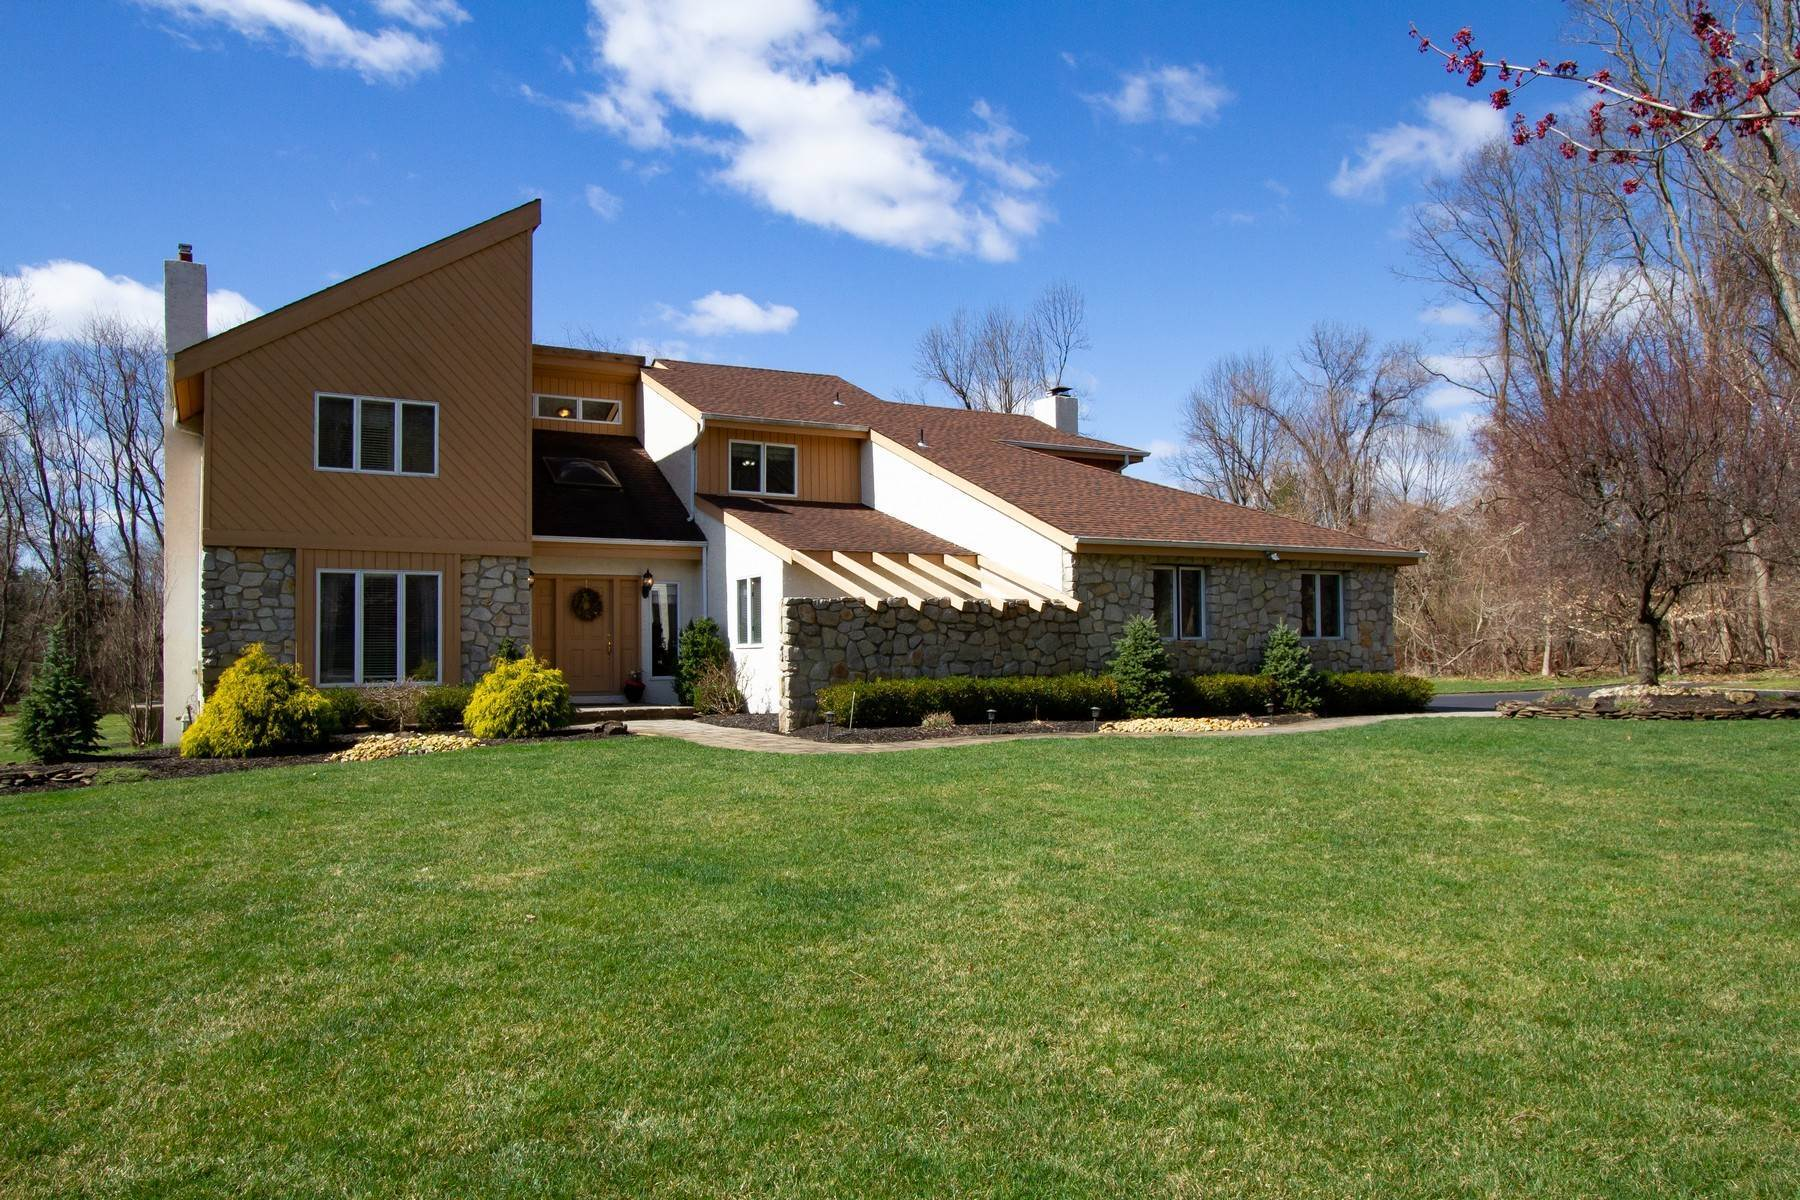 Single Family Homes pour l Vente à LIVE Inspired 43 Spruce Lane Colts Neck, New Jersey 07722 États-Unis